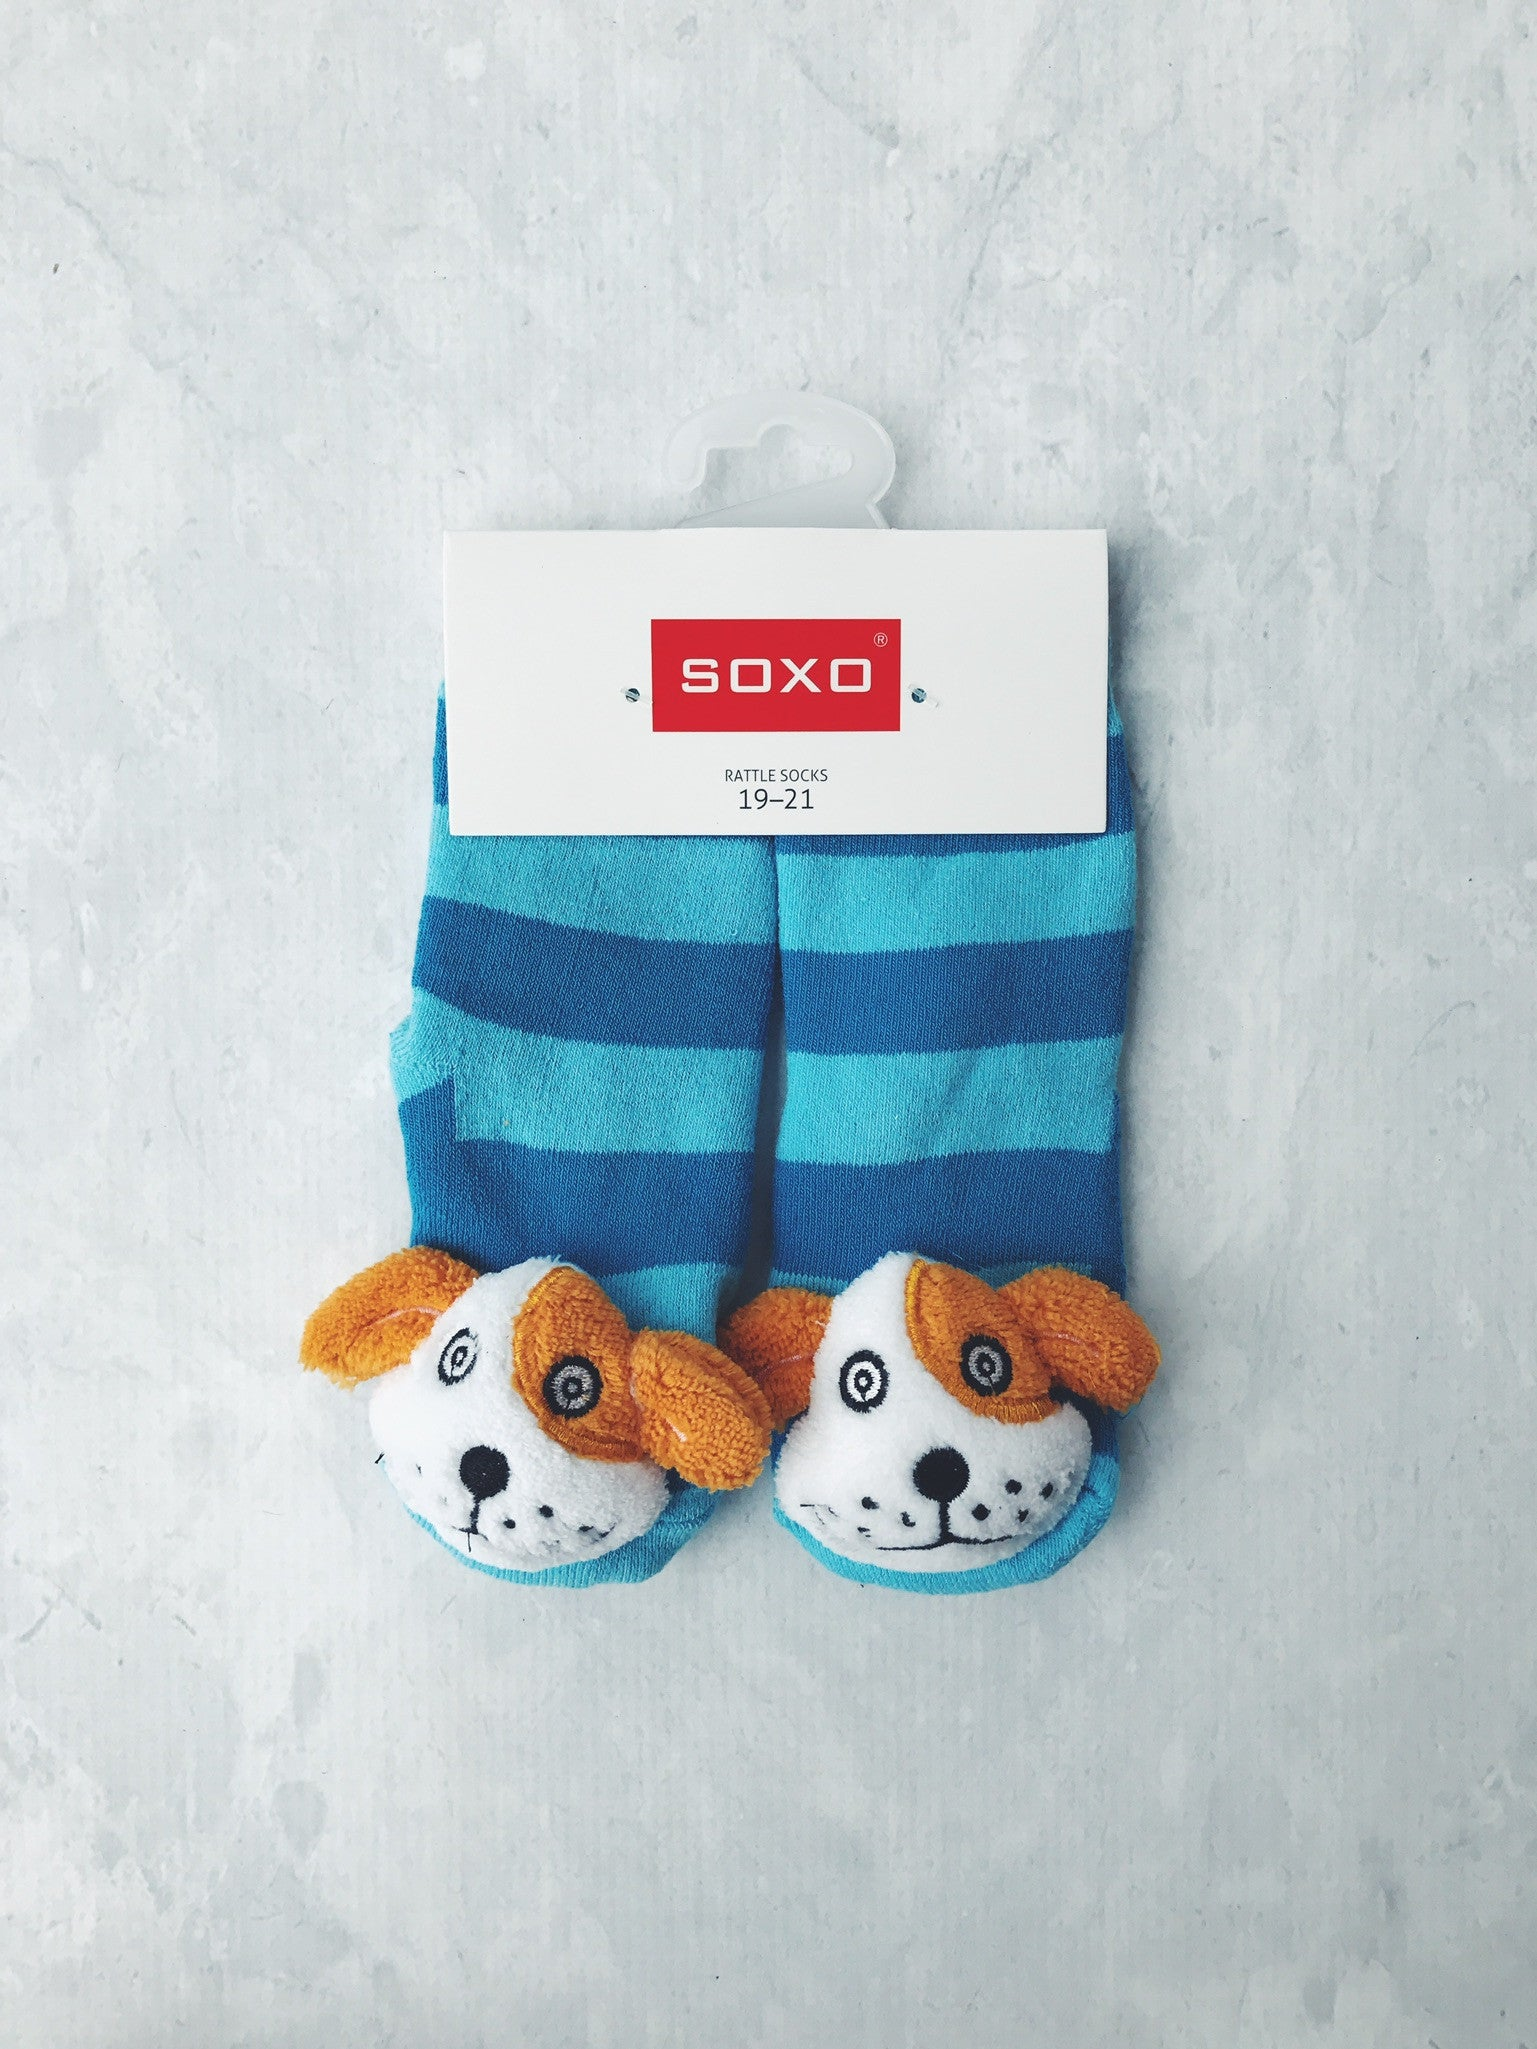 Rattle Socks Soxo Large Puppy Non Slip Mama Fashion Me